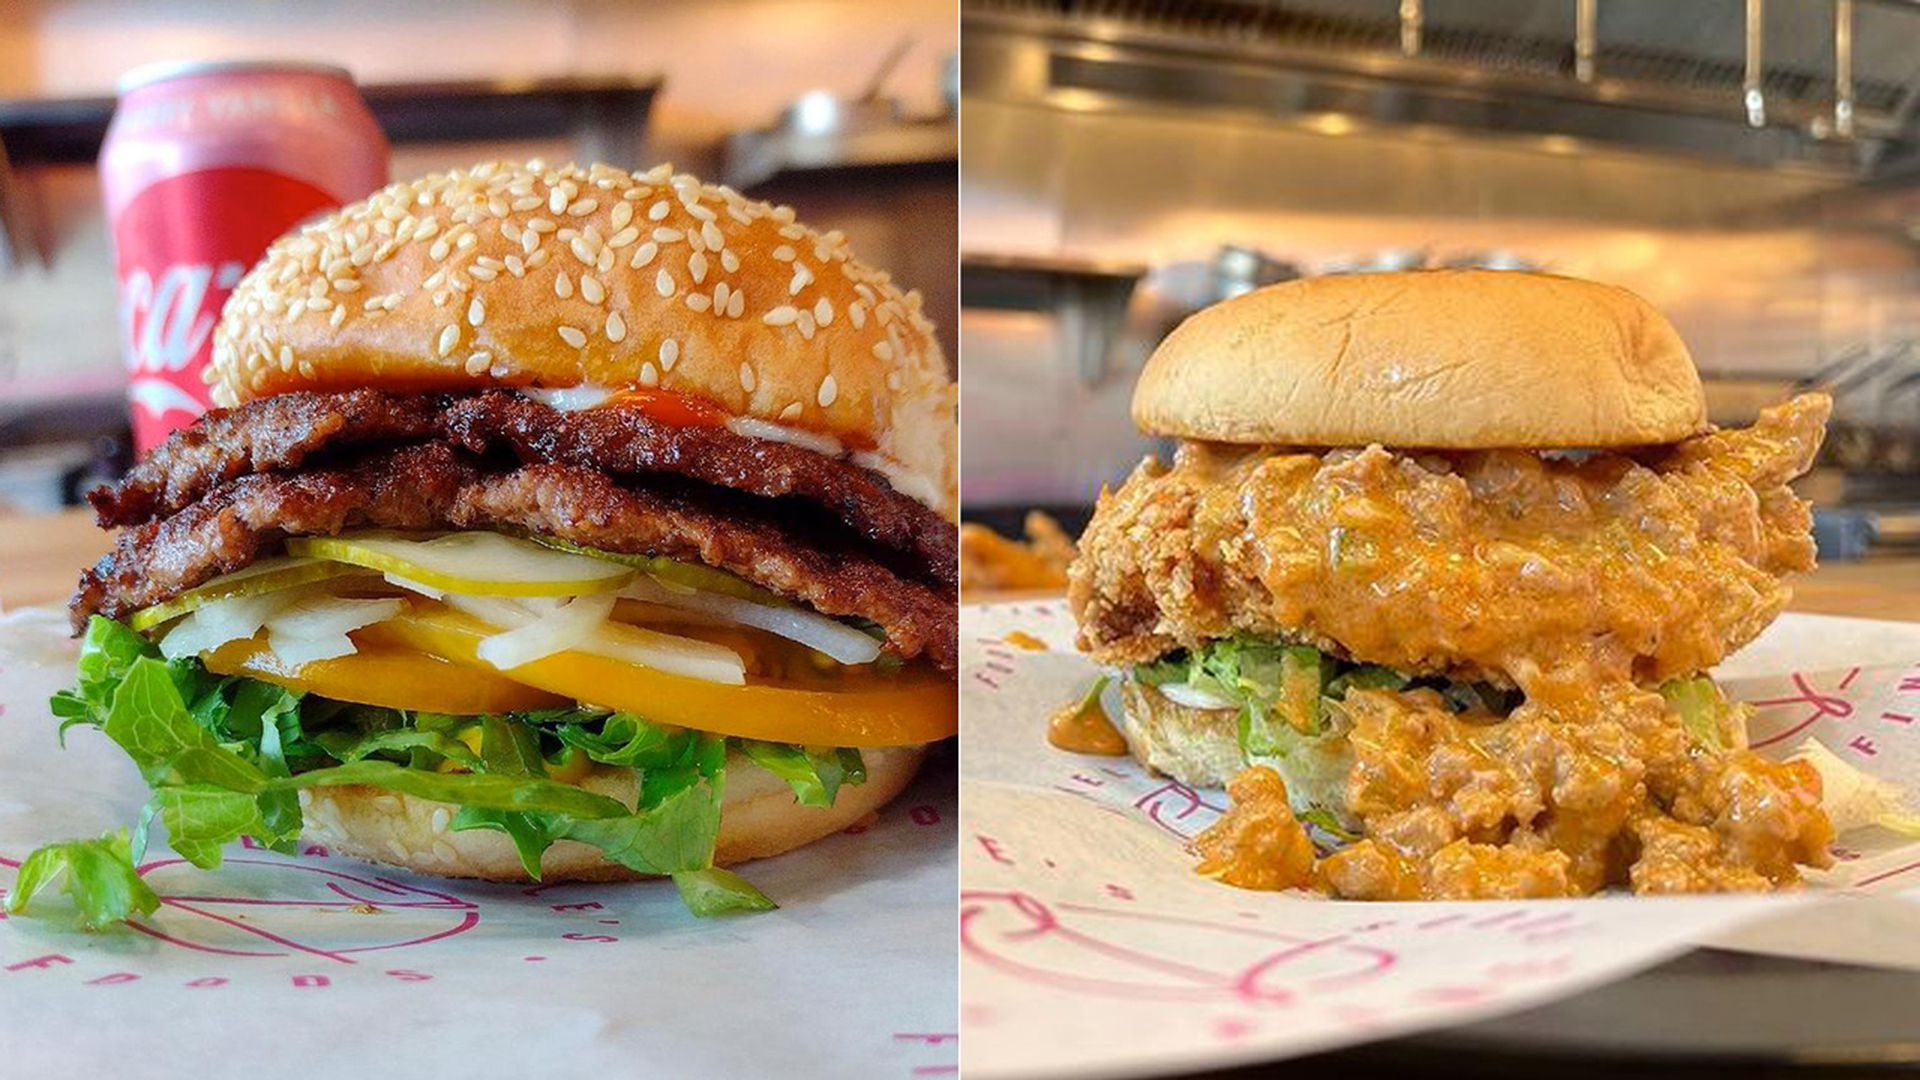 Burger specials from Lachele's